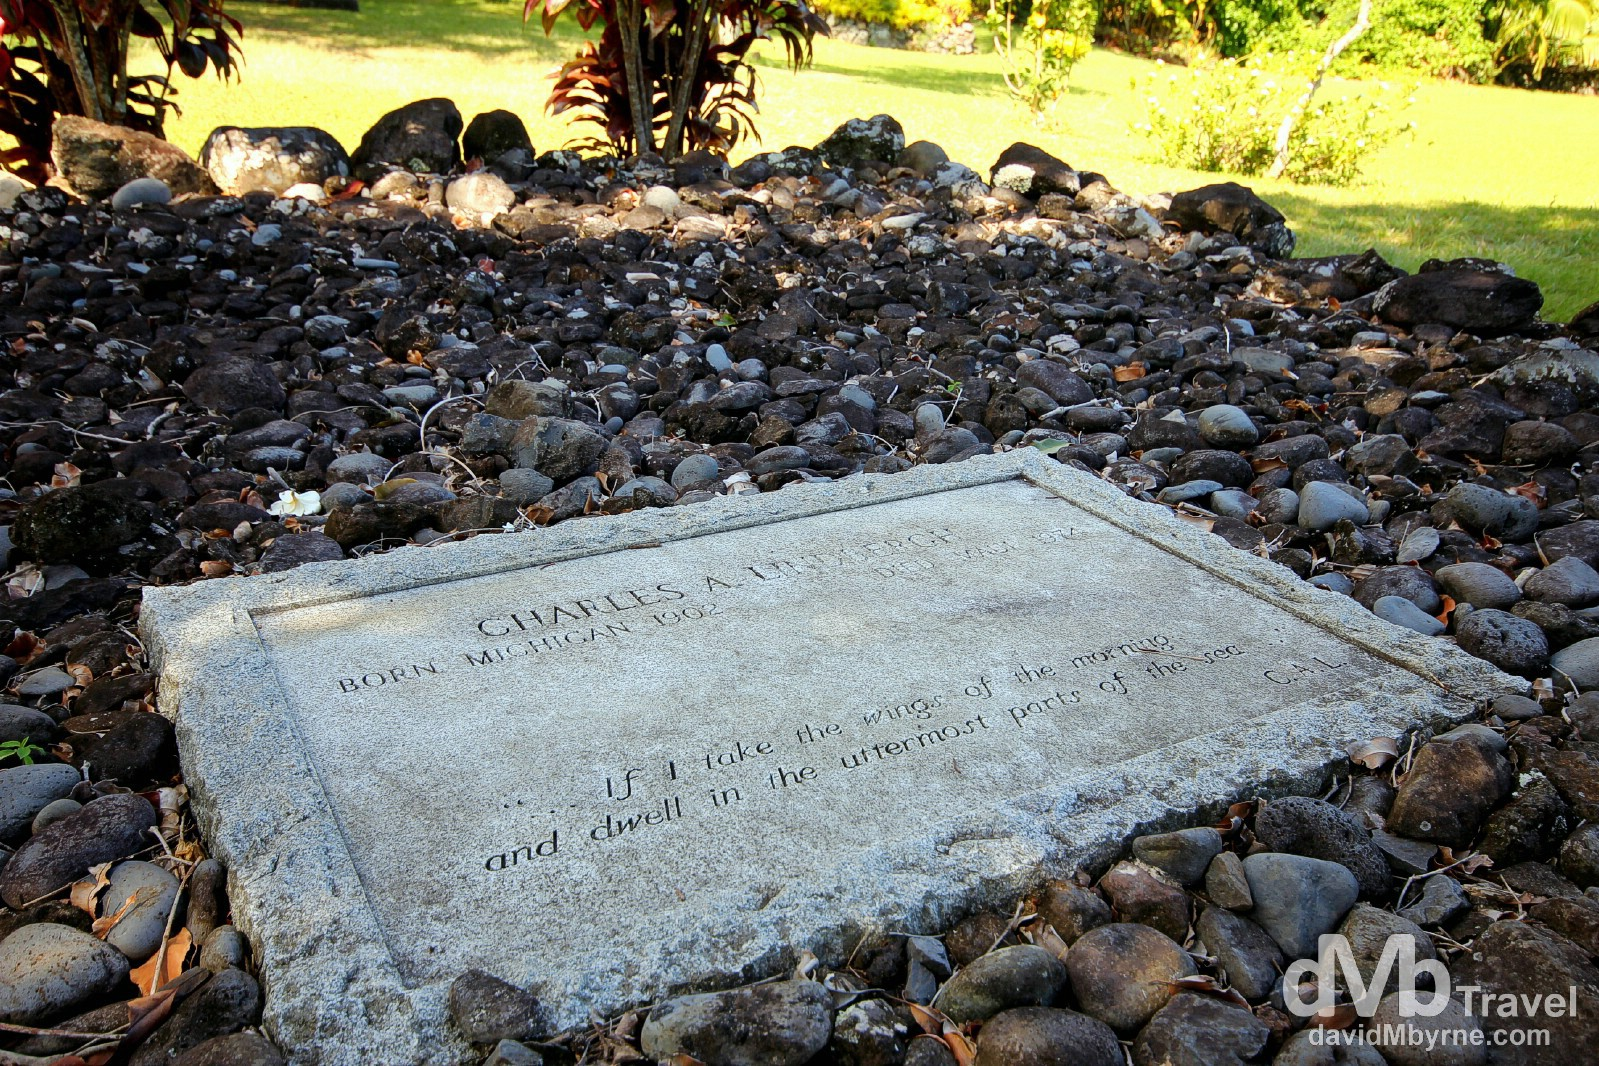 The grave of Charles Lindbergh in the grounds of Palapala Ho'Omau Church, Maui, a stop on Valley Isle Excursion's 'Road To Hana' tour. Maui, Hawaii, USA. March 7th 2103.